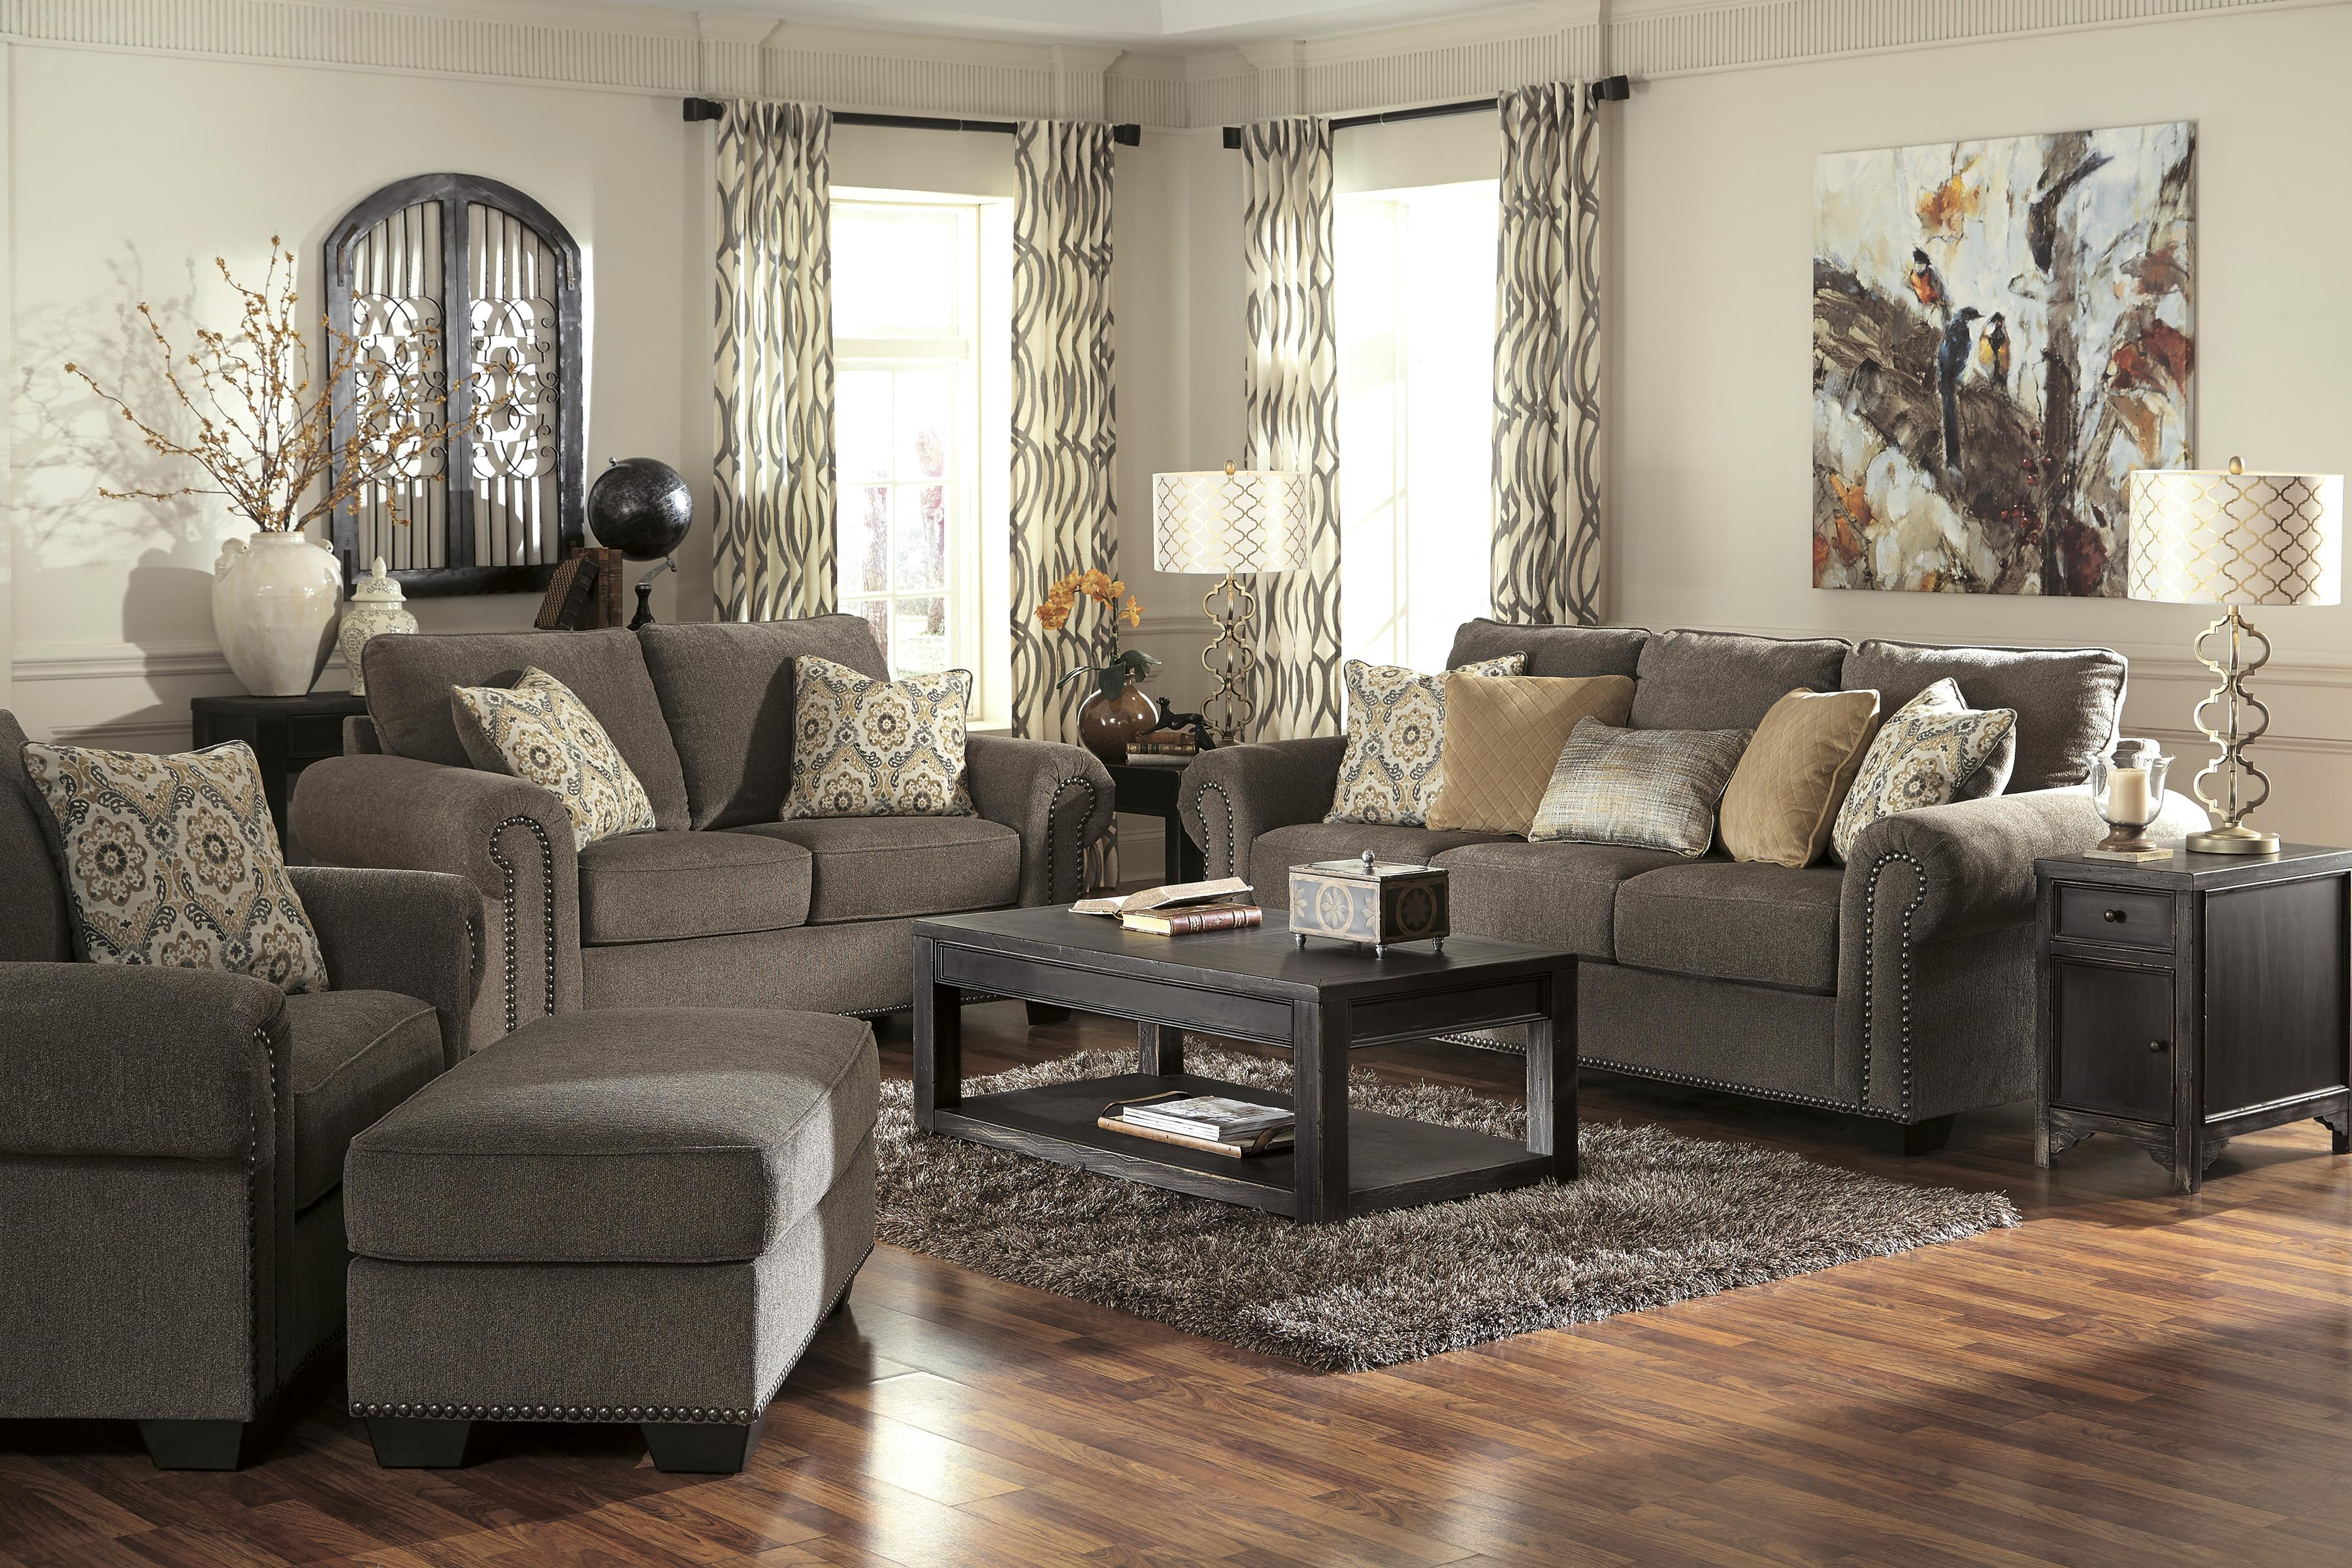 Benchcraft Emelen Stationary Living Room Group - Item Number: 45600 Living Room Group 3